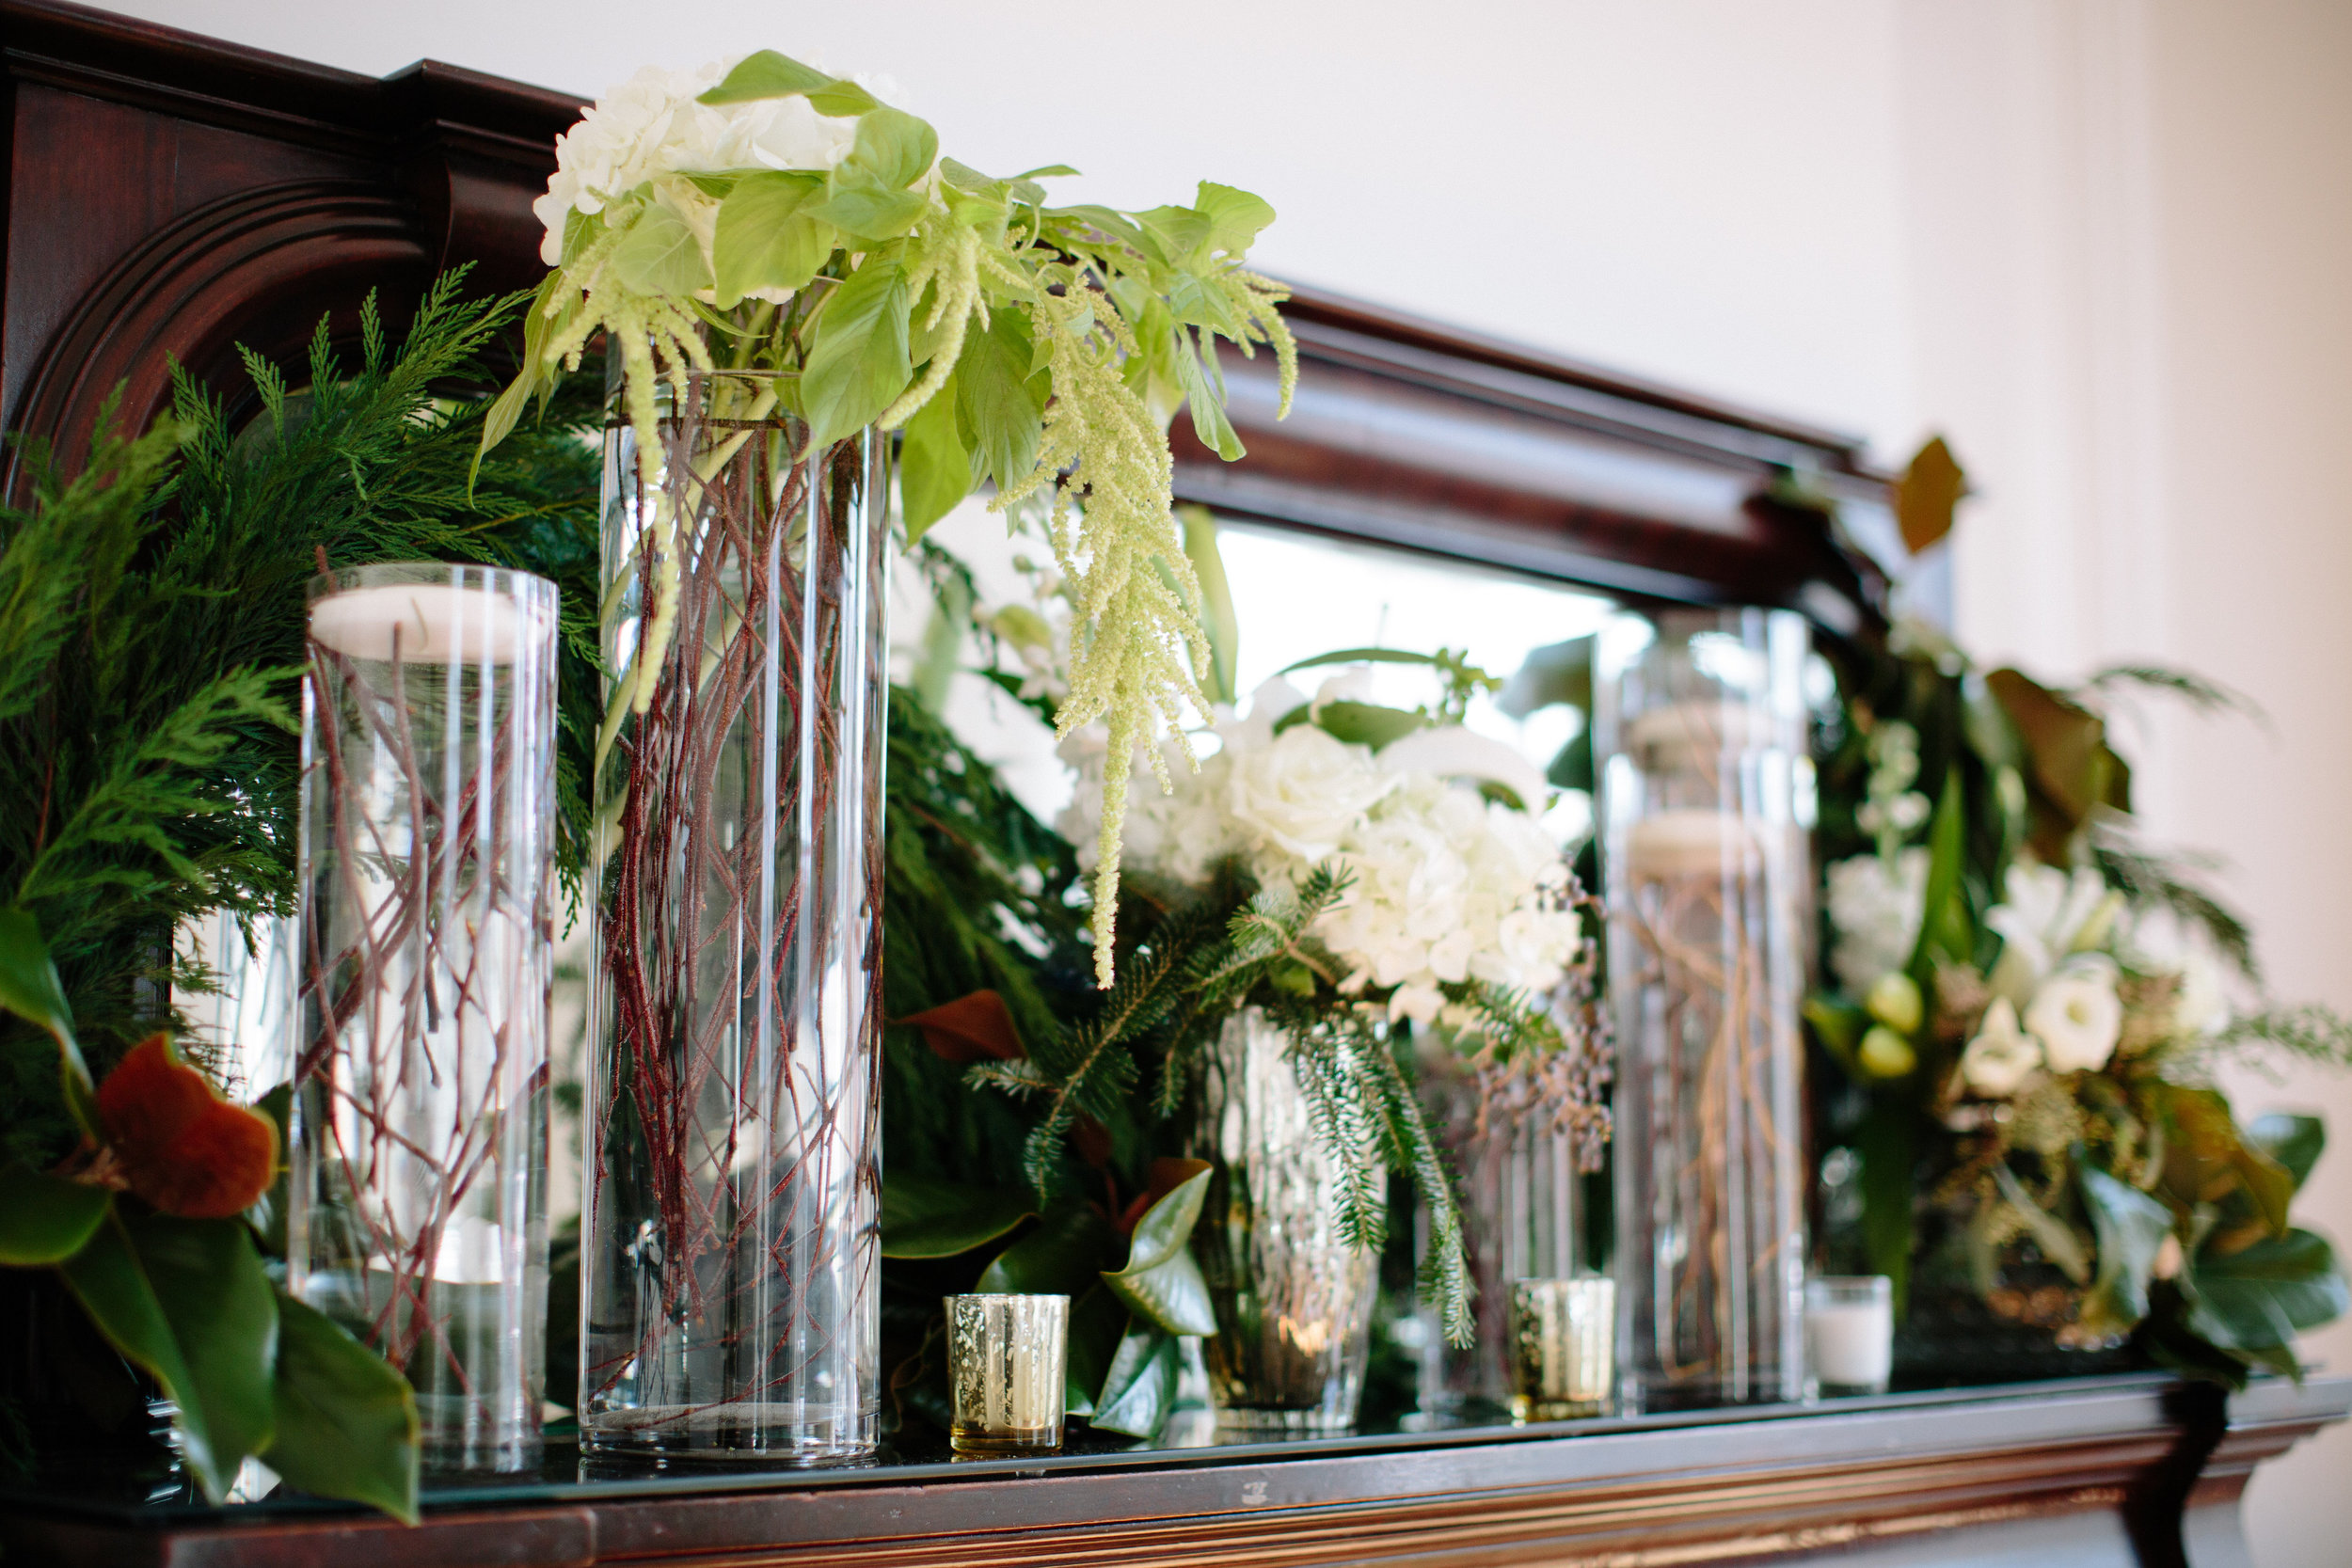 ae802-weddingmantlefloralsgreeneryraleighweddingweddingmantlefloralsgreeneryraleighwedding.jpg